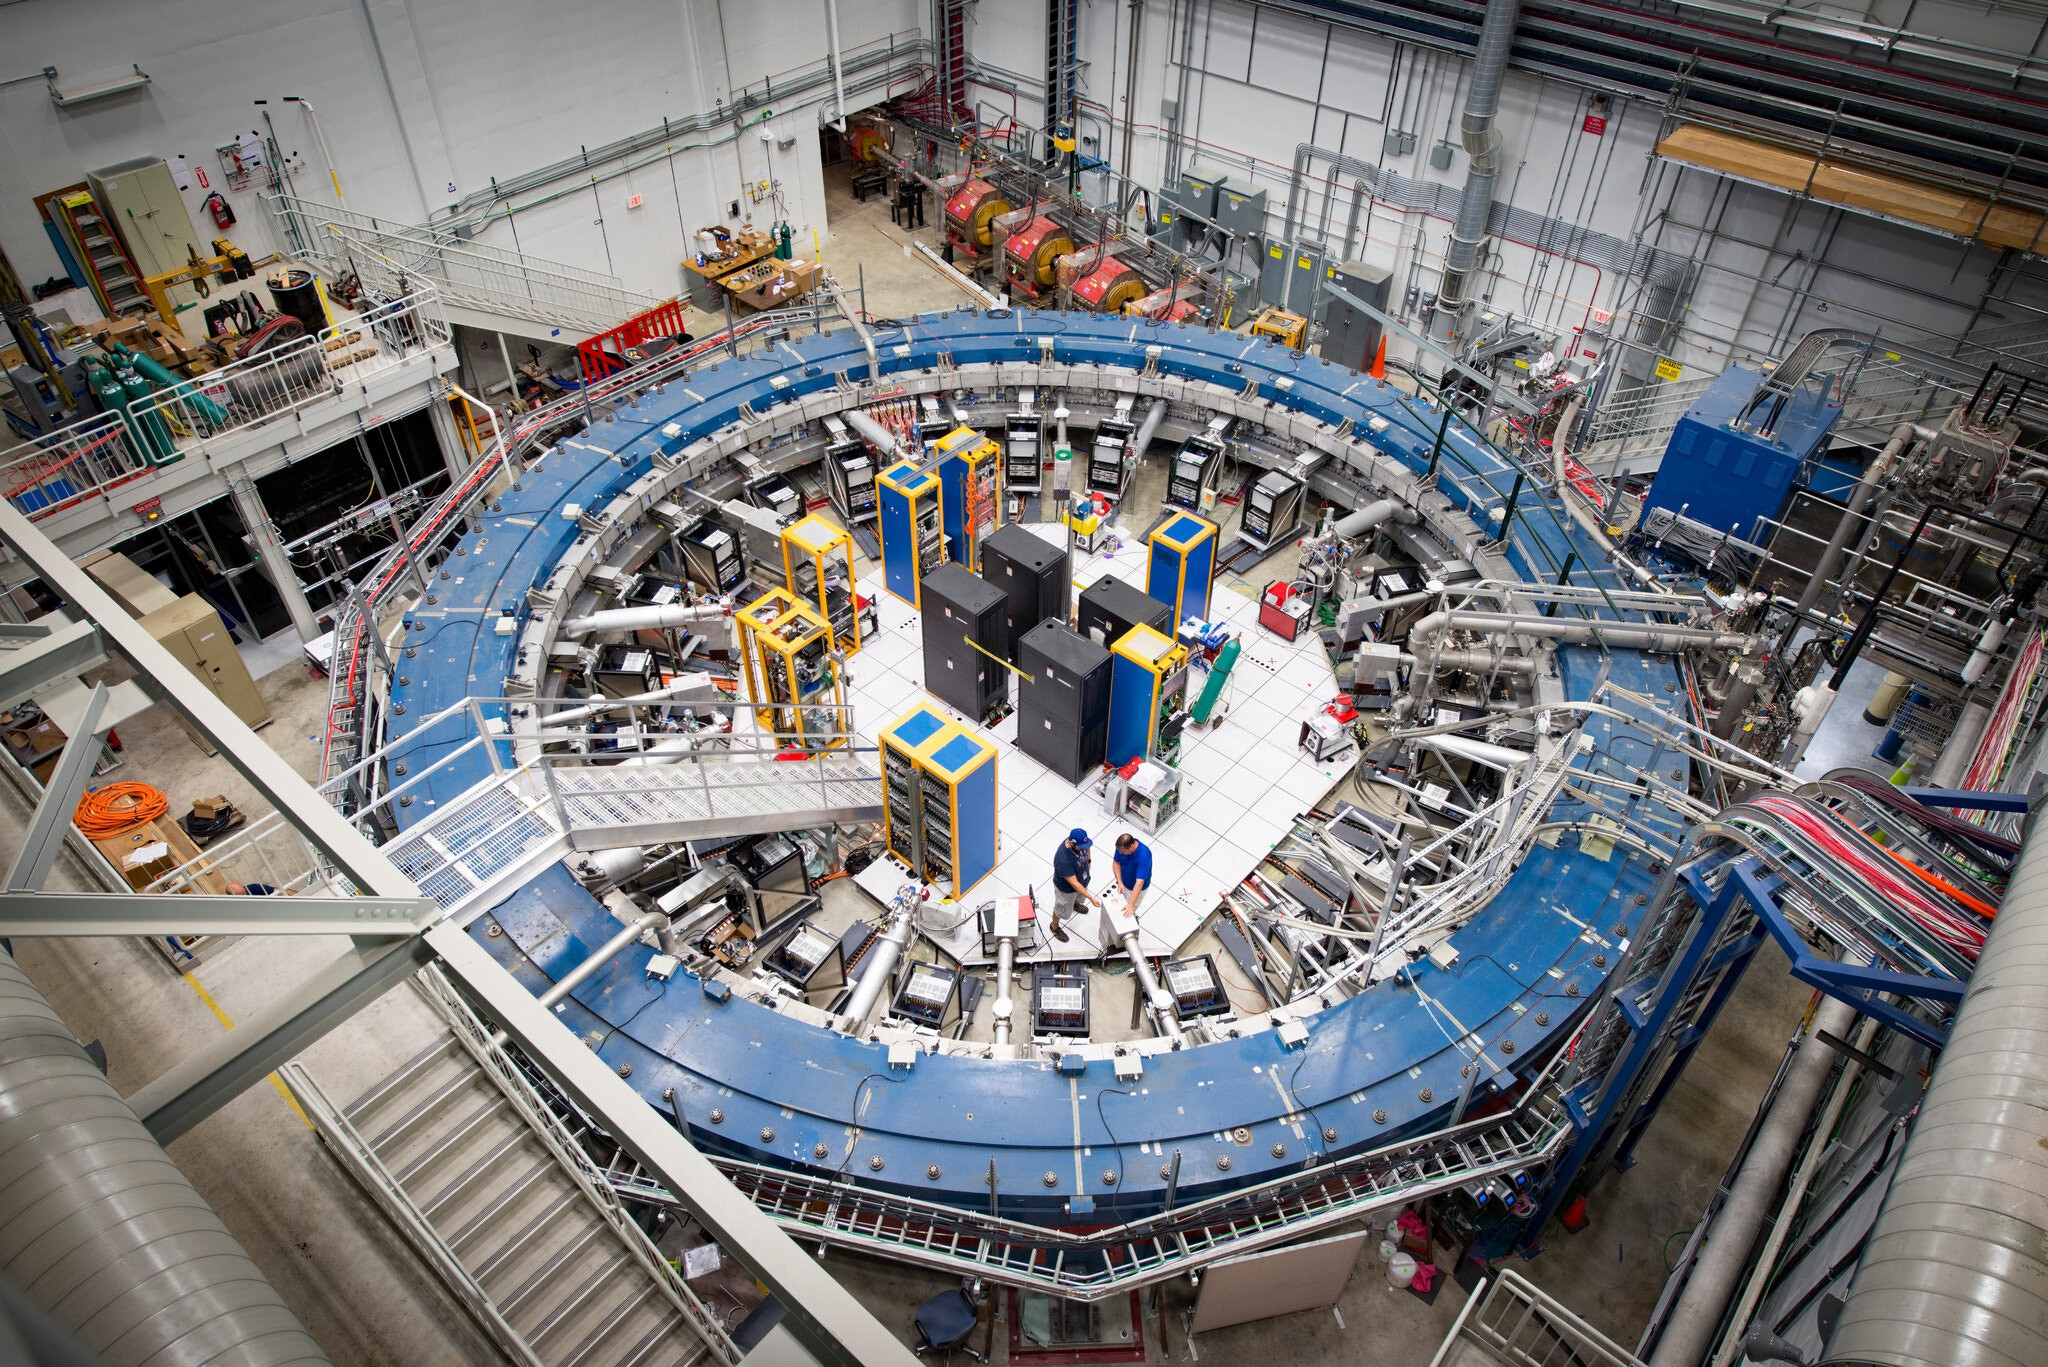 This is a picture of the Muon g-2 ring at The Fermi National Accelerator Laboratory in Batavia, Ill. A wide open science lab showing a magnetic field blue ring in an aerial shot. Two scientists are on the floor experimenting with magnetic ring researching this muon particle.